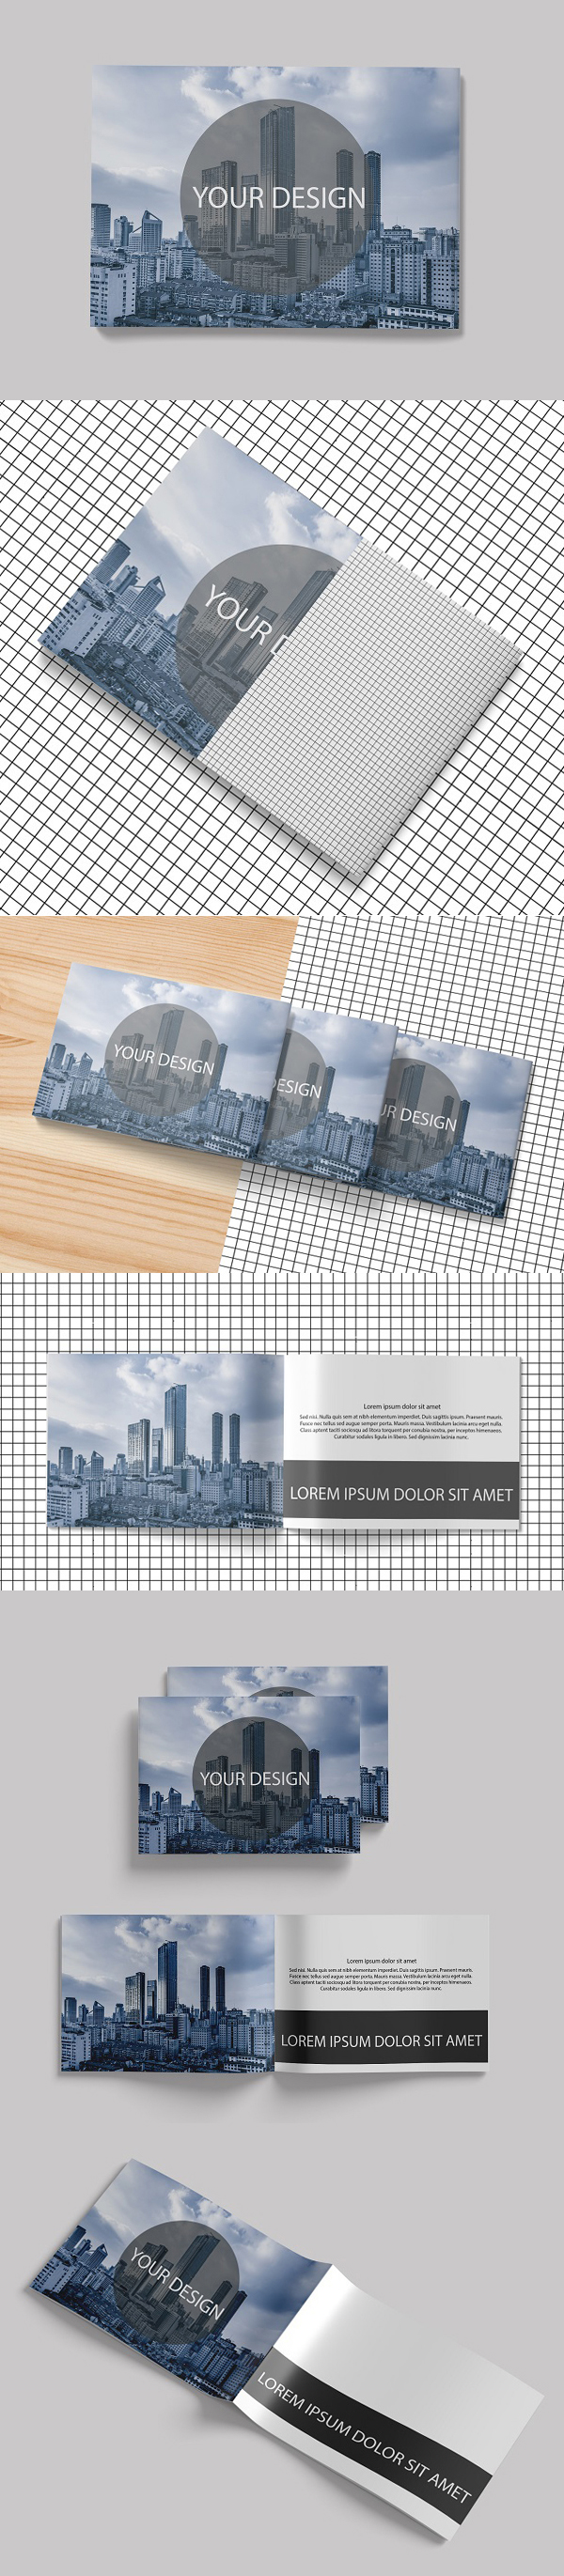 Free A4 Landscape Brochure Mock-Up